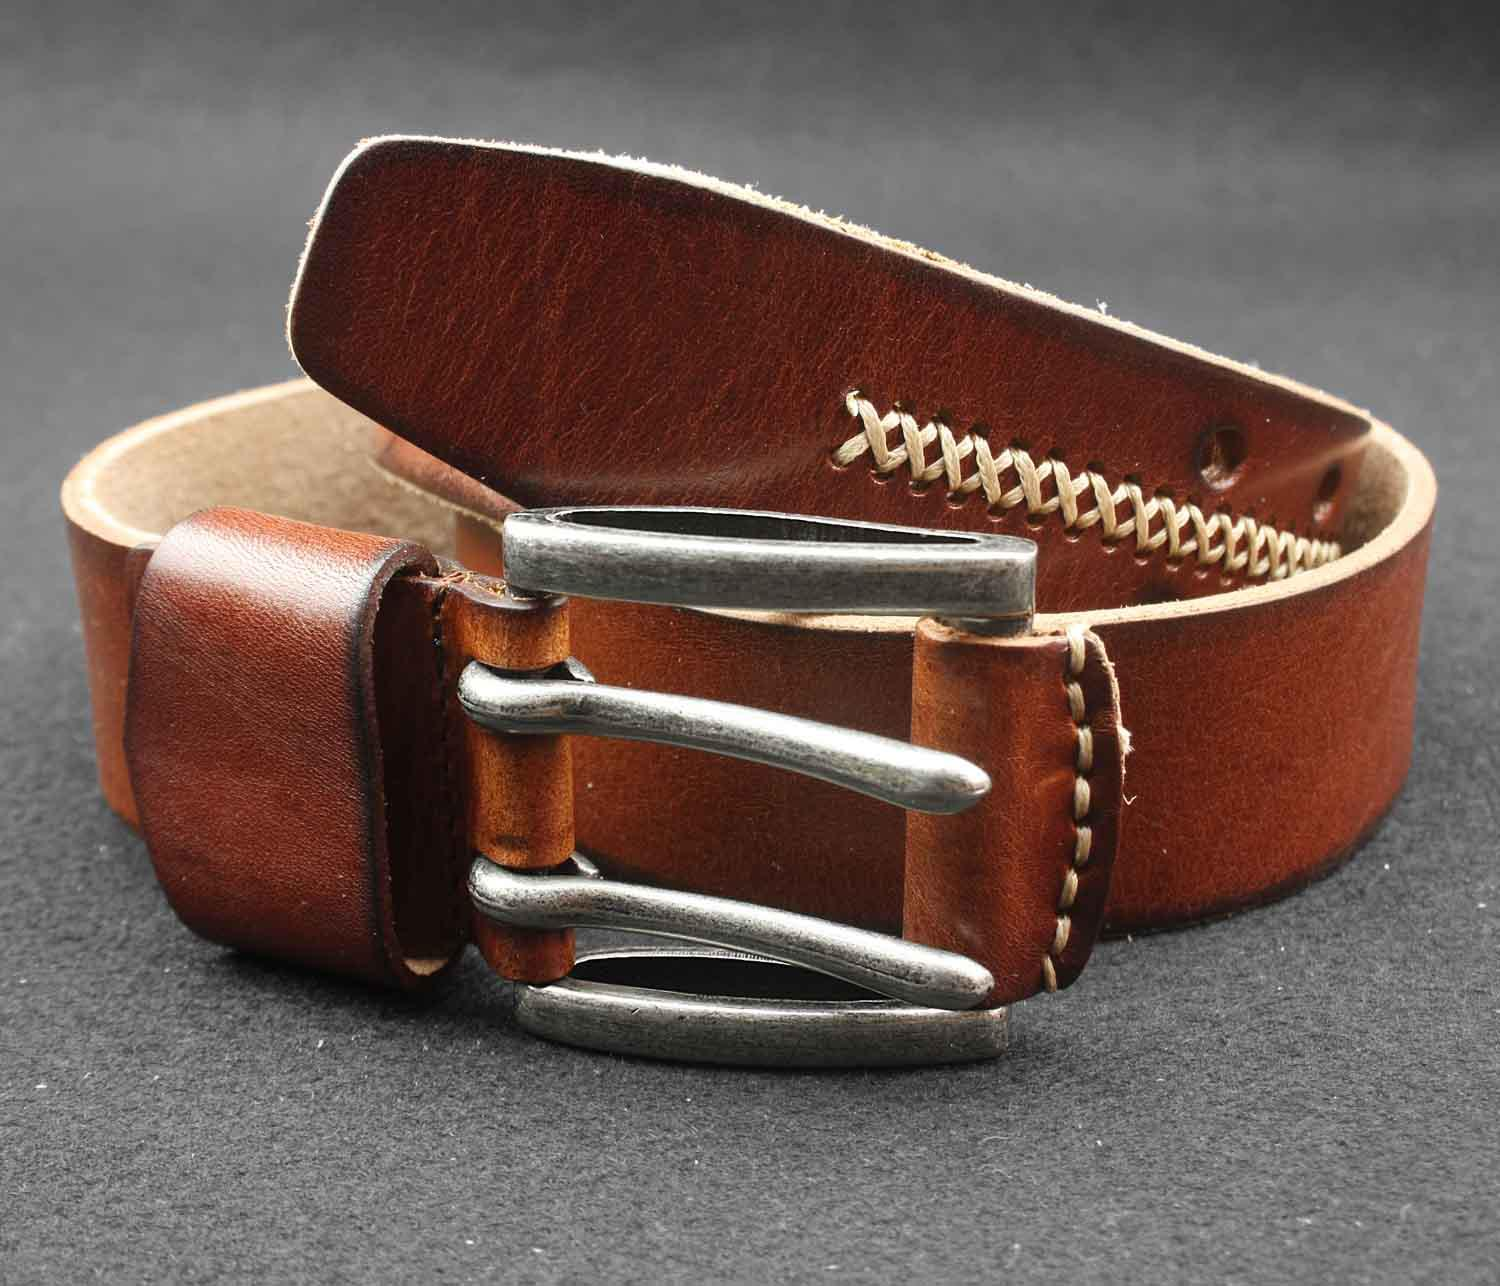 Casual Belts for Men. Men's leather belts from Orion Leather are designed for all manner of occasion. Here, you will find casual belts fit for everyday use at the home, office, working outdoors, or taking care of business around town.